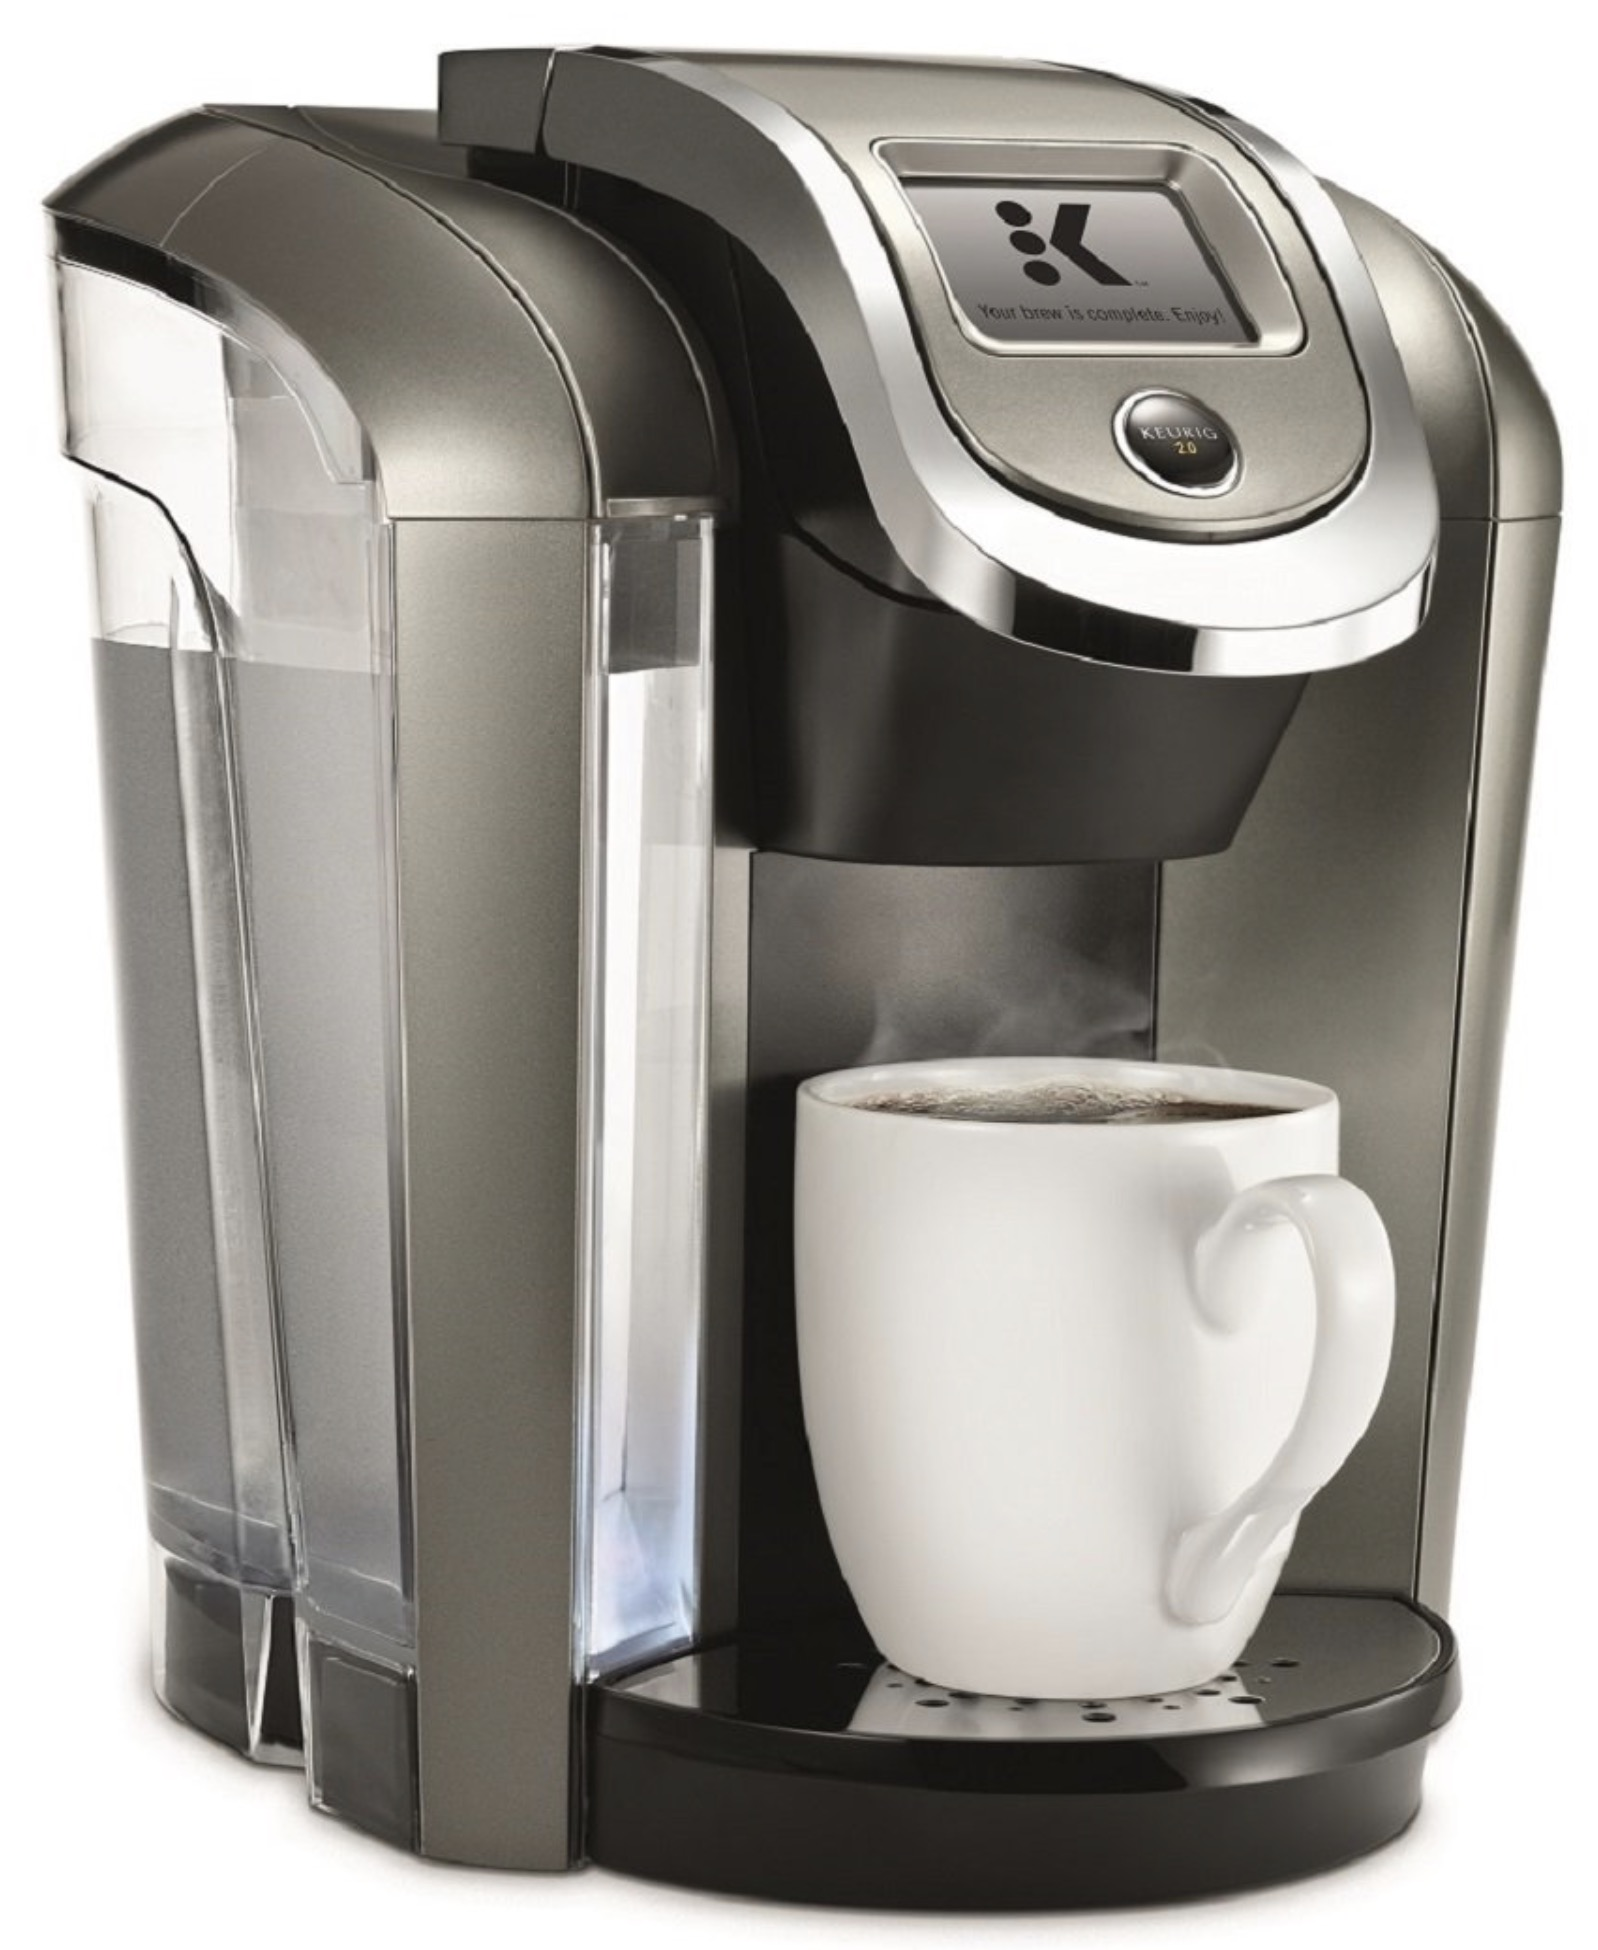 Keurig k575 single serve coffee maker review How to make coffee with a coffee maker